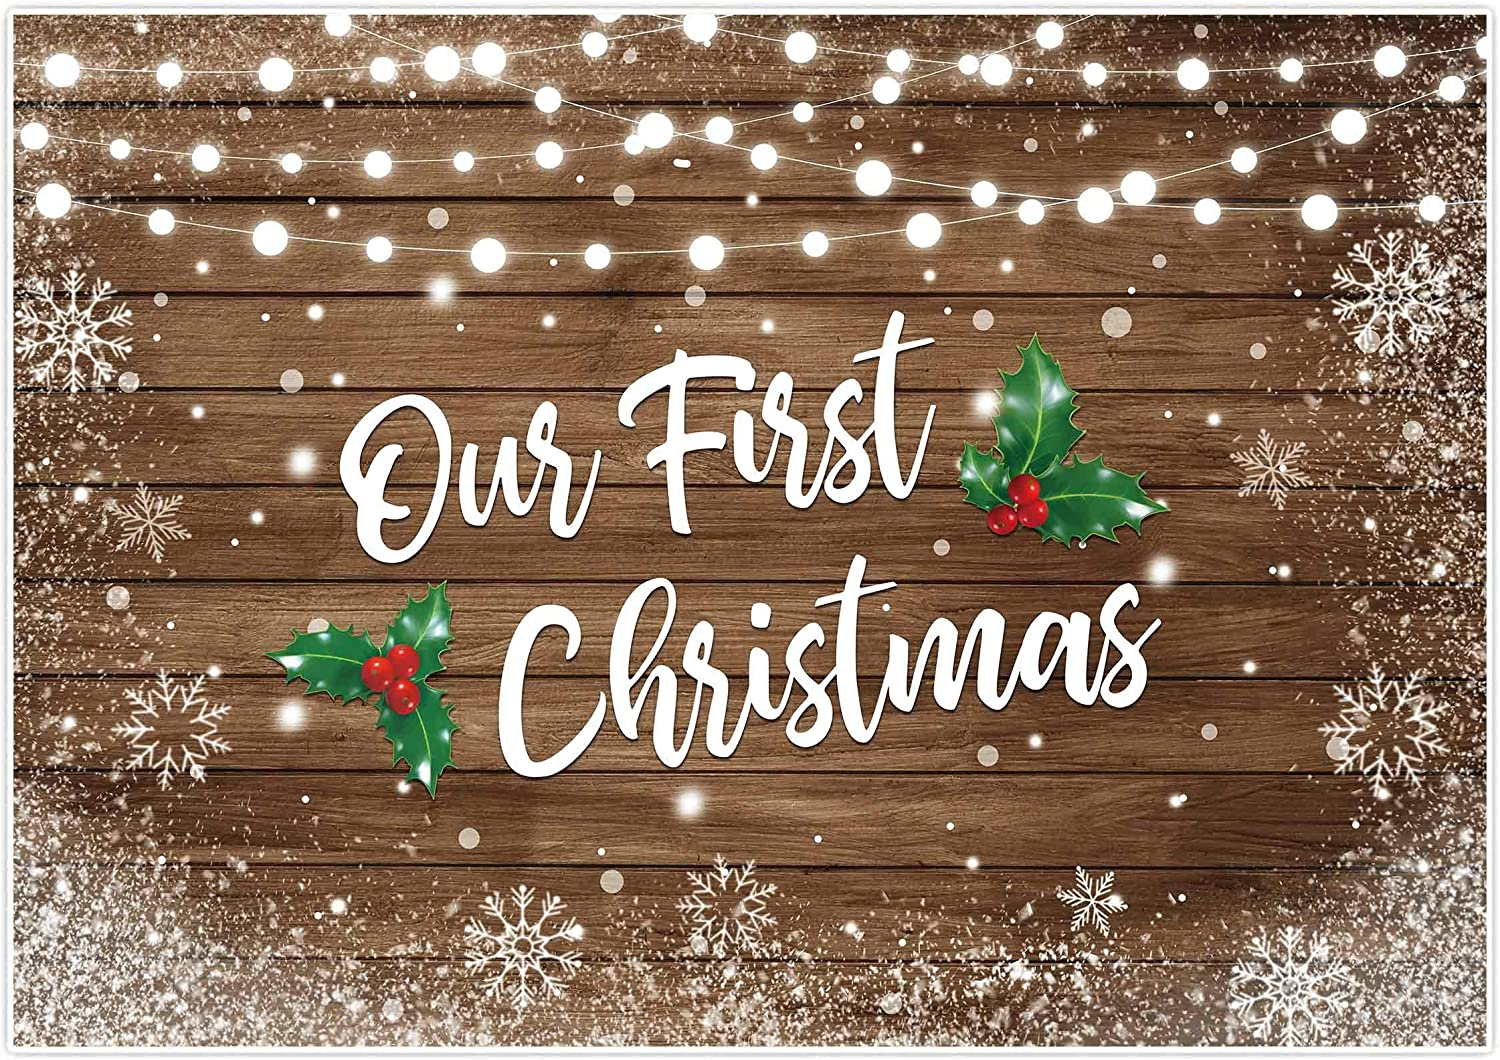 Allenjoy 7x5ft Our First Christmas Together 2020 Backdrop Snowflake Rustic Brown Wood Couple Engaged New Home Holiday Newborn 1st Baby Party Background Winter Wonderland Party Decor Photo Booth Props